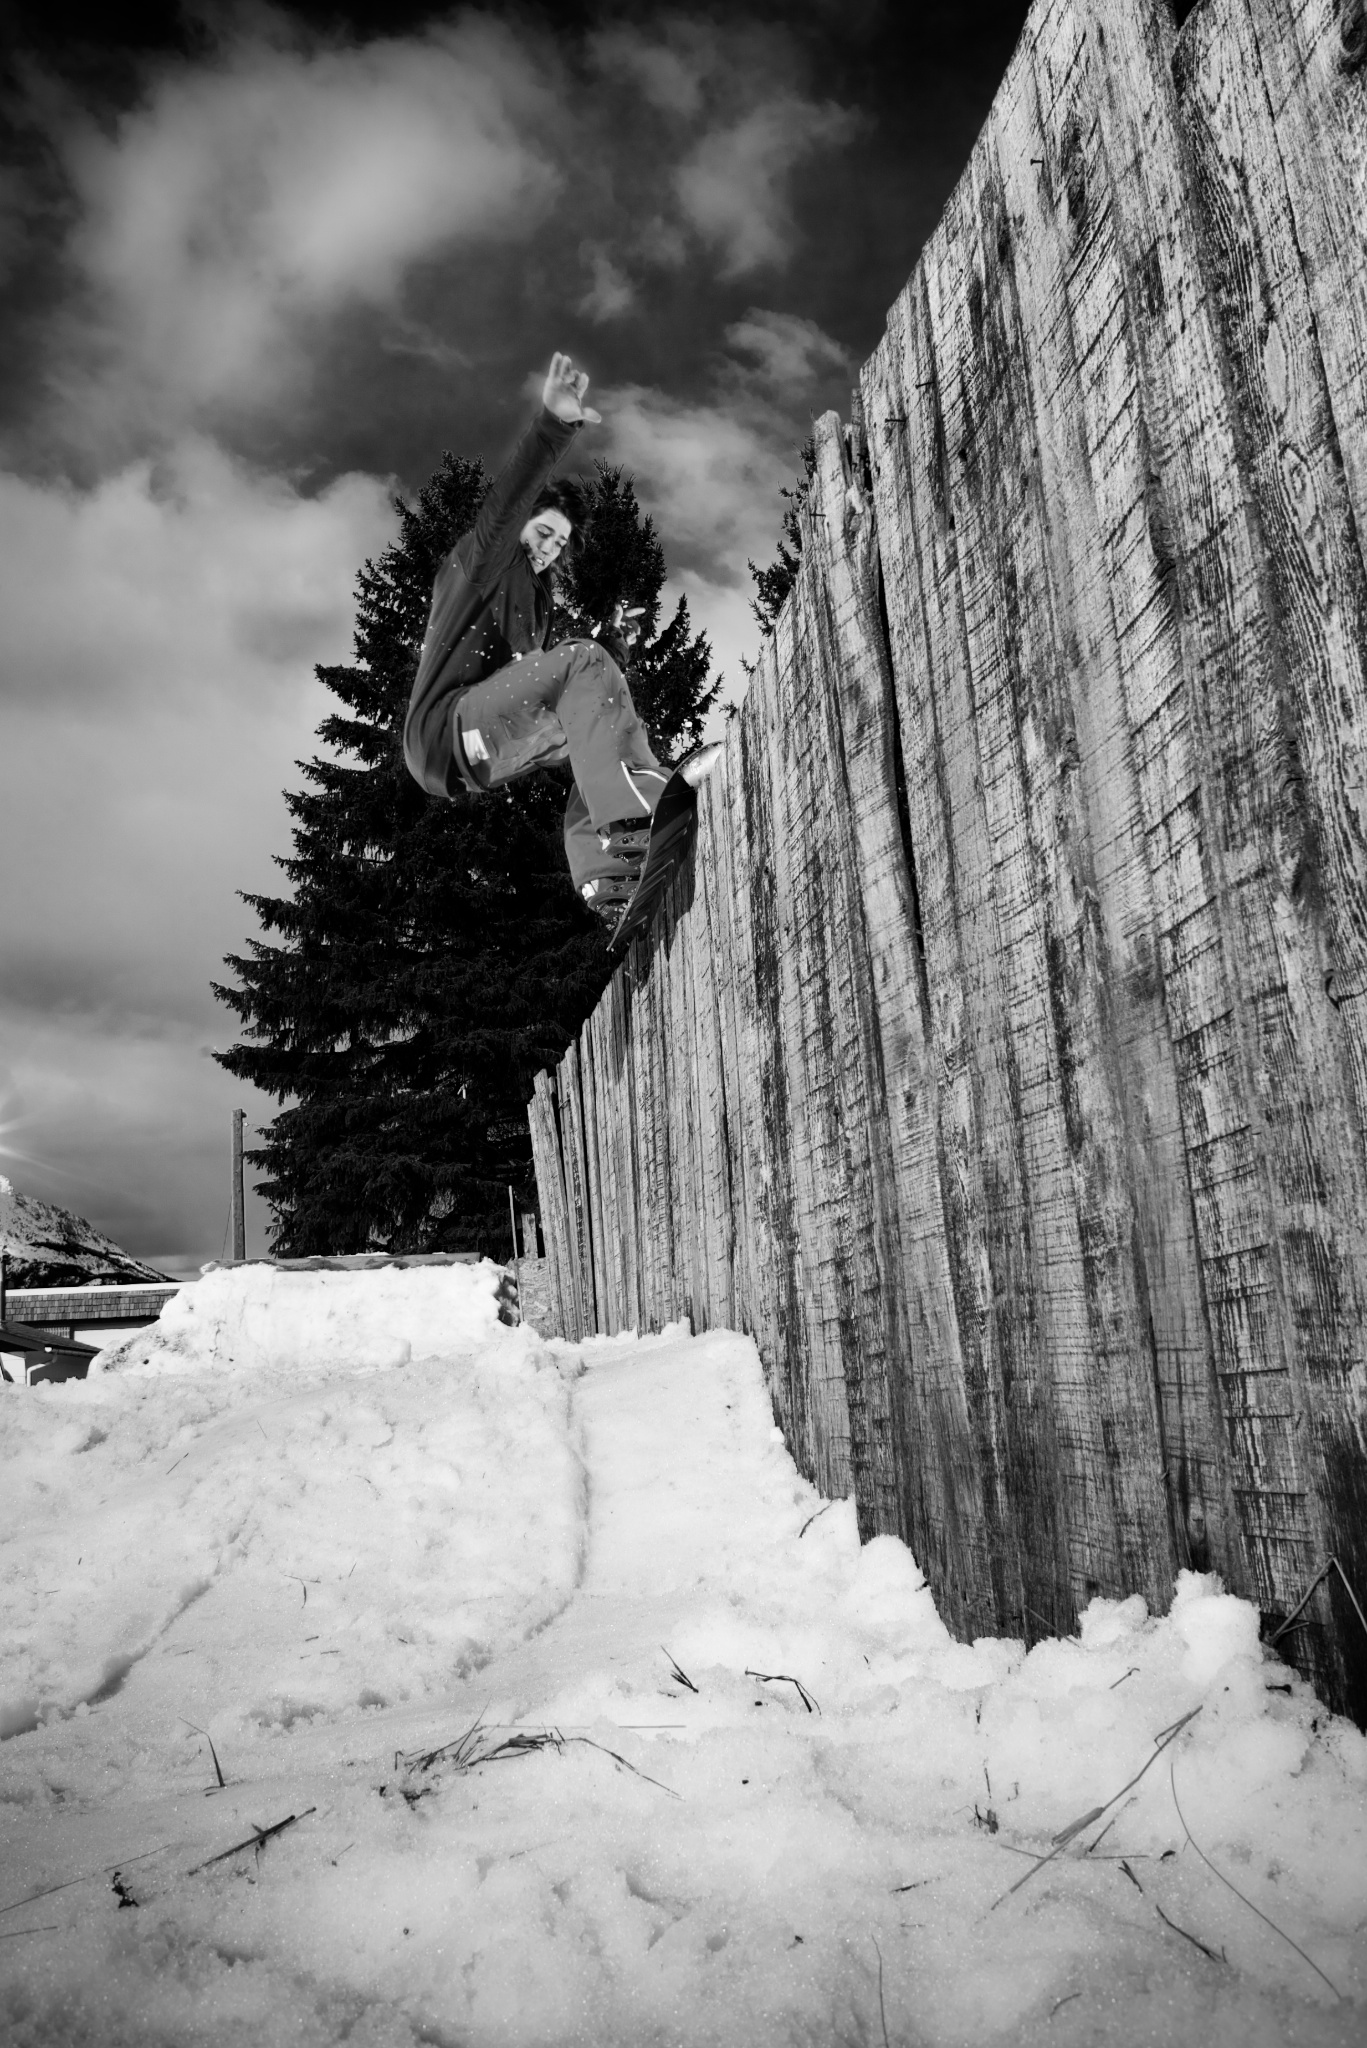 Chris Bradley, 50-50 on the neighbour's fence. Fernie B.C. Canada.